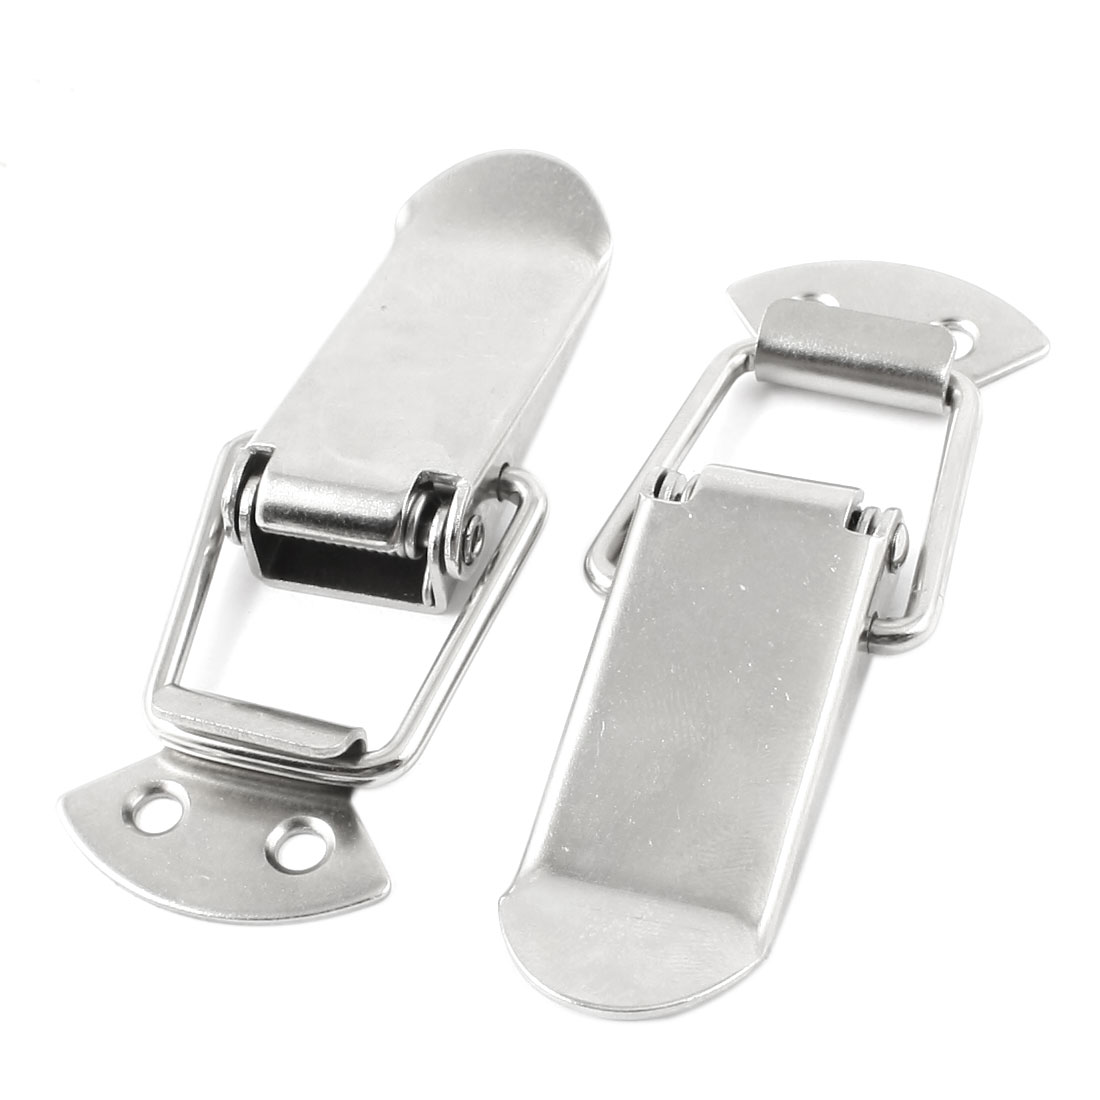 2pcs Stainless Steel Spring Loaded Chests Trunk Cases Toggle Latch Catch